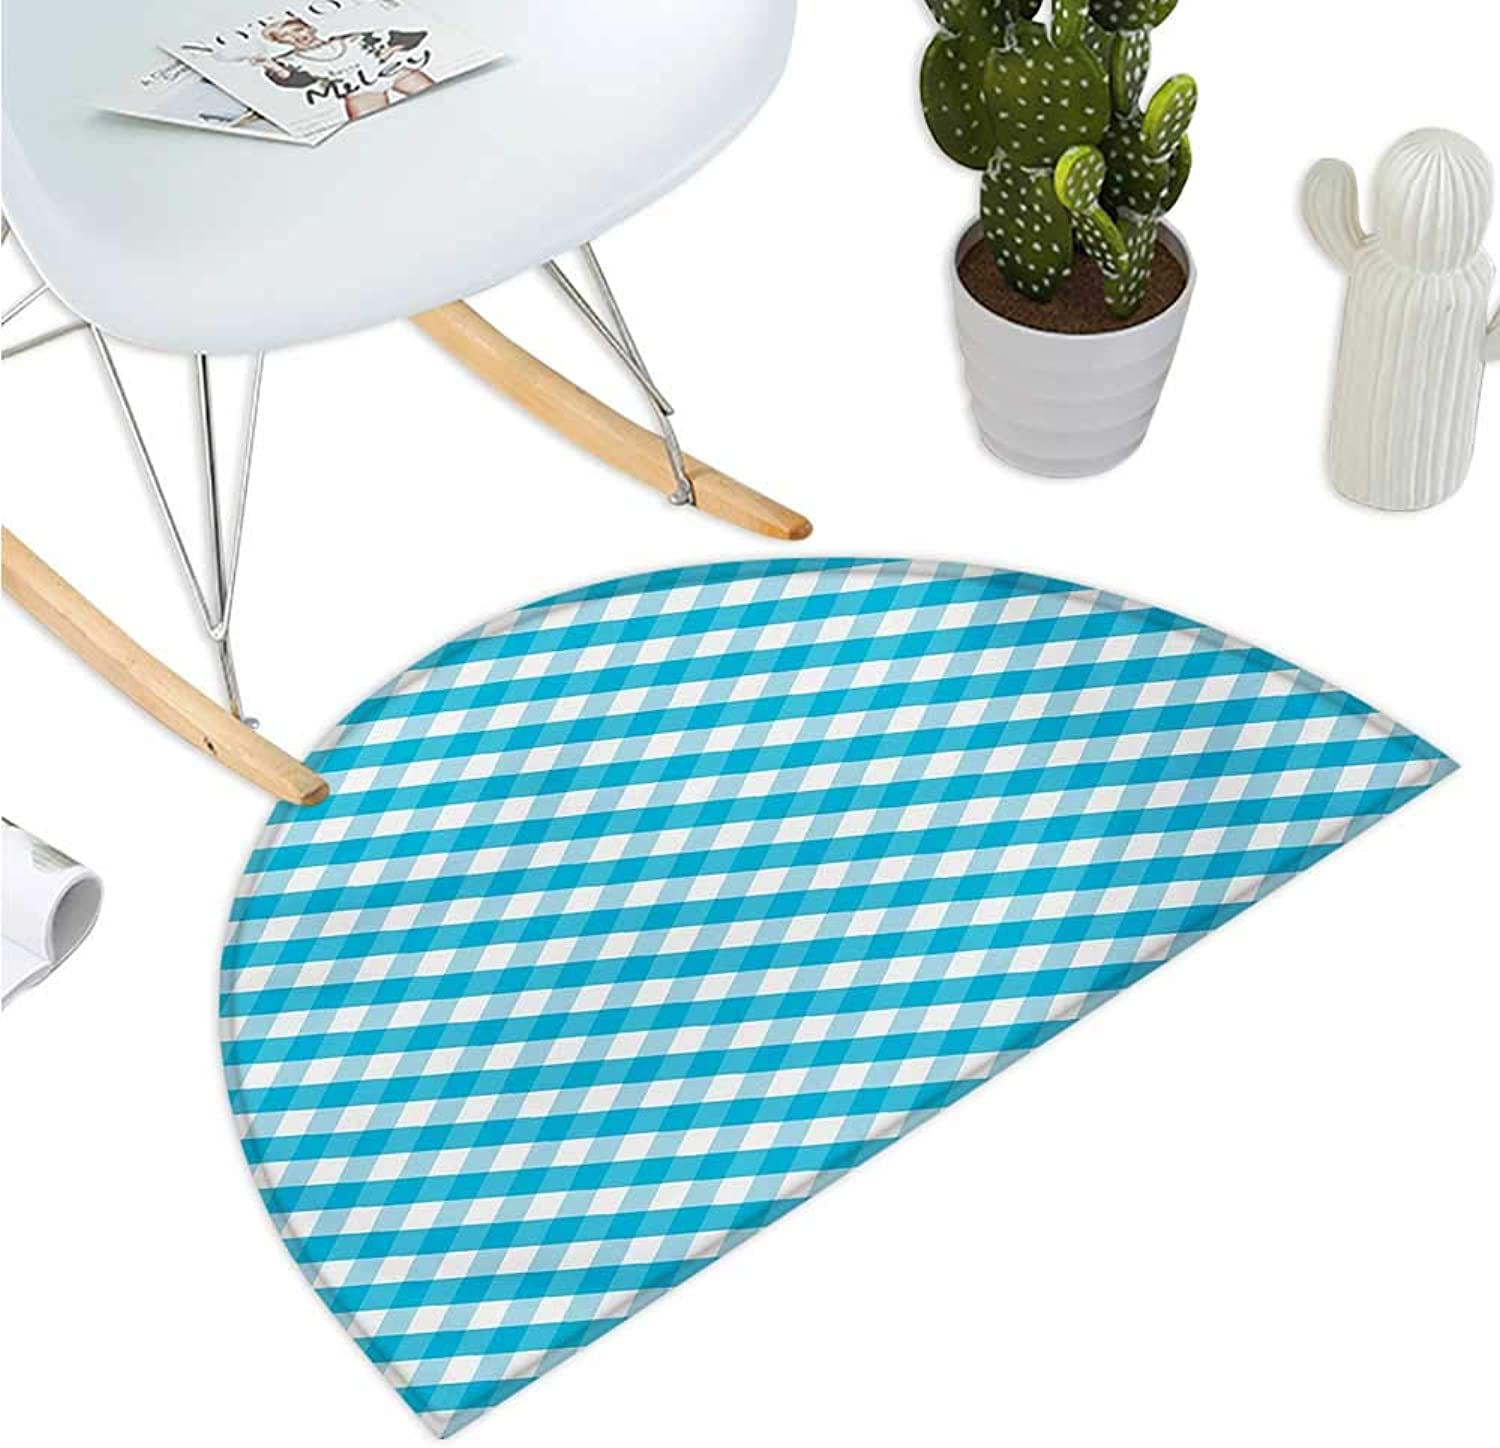 Checkered Half Round Door mats Diagonal Stripes in Aqua color Monochrome Crossed Lines in Classical Tile Design Bathroom Mat H 47.2  xD 70.8  Aqua White